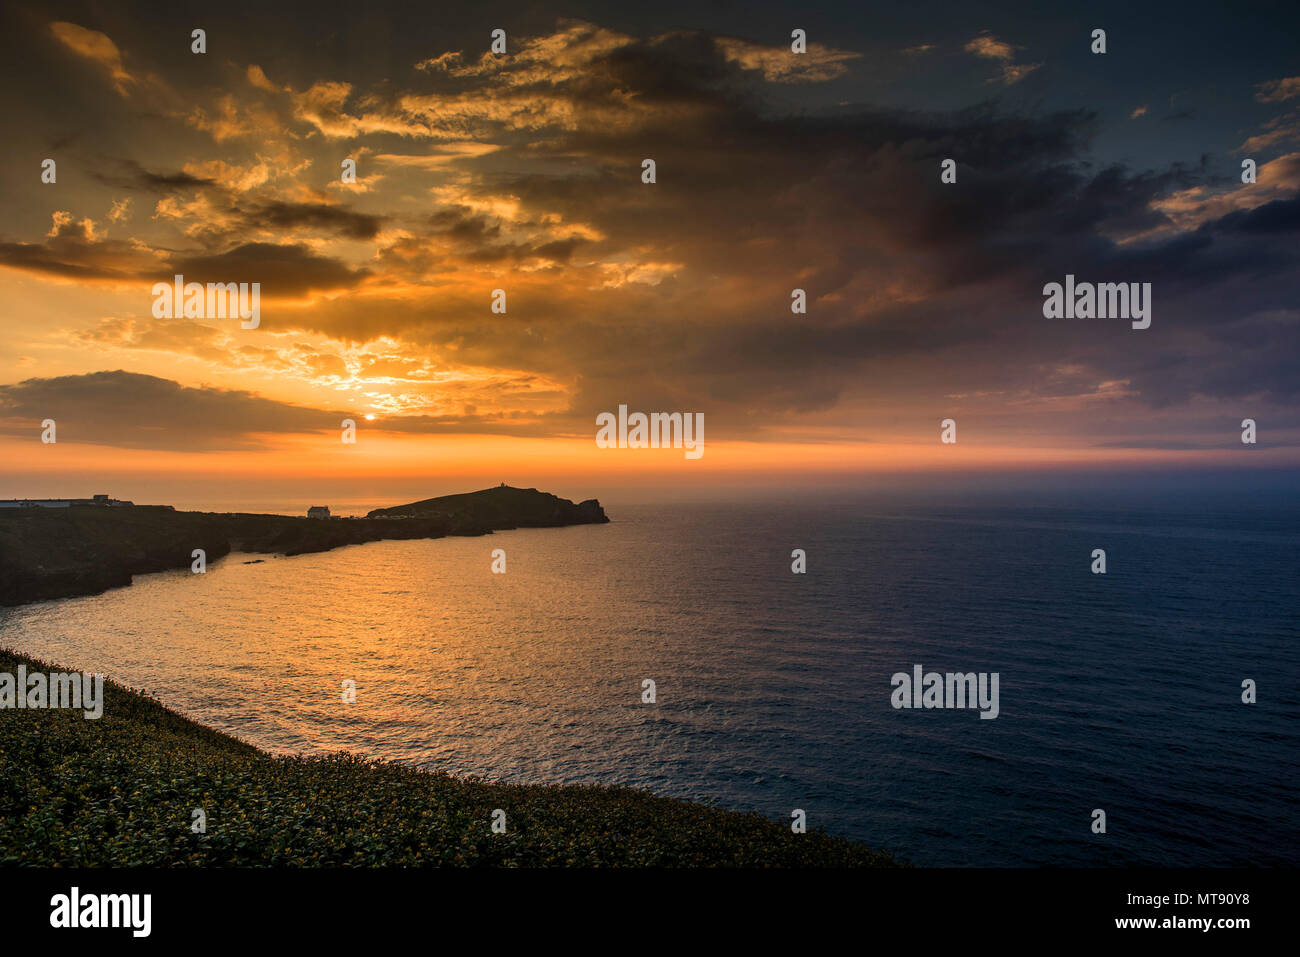 Newquay, Cornwall, UK. 28th May, 2018. UK Weather. A glorious sunset over Towan Headland to end a day of wonderful summer weather for Newquay, Cornwall. Gordon Scammell/Alamy Live News - Stock Image